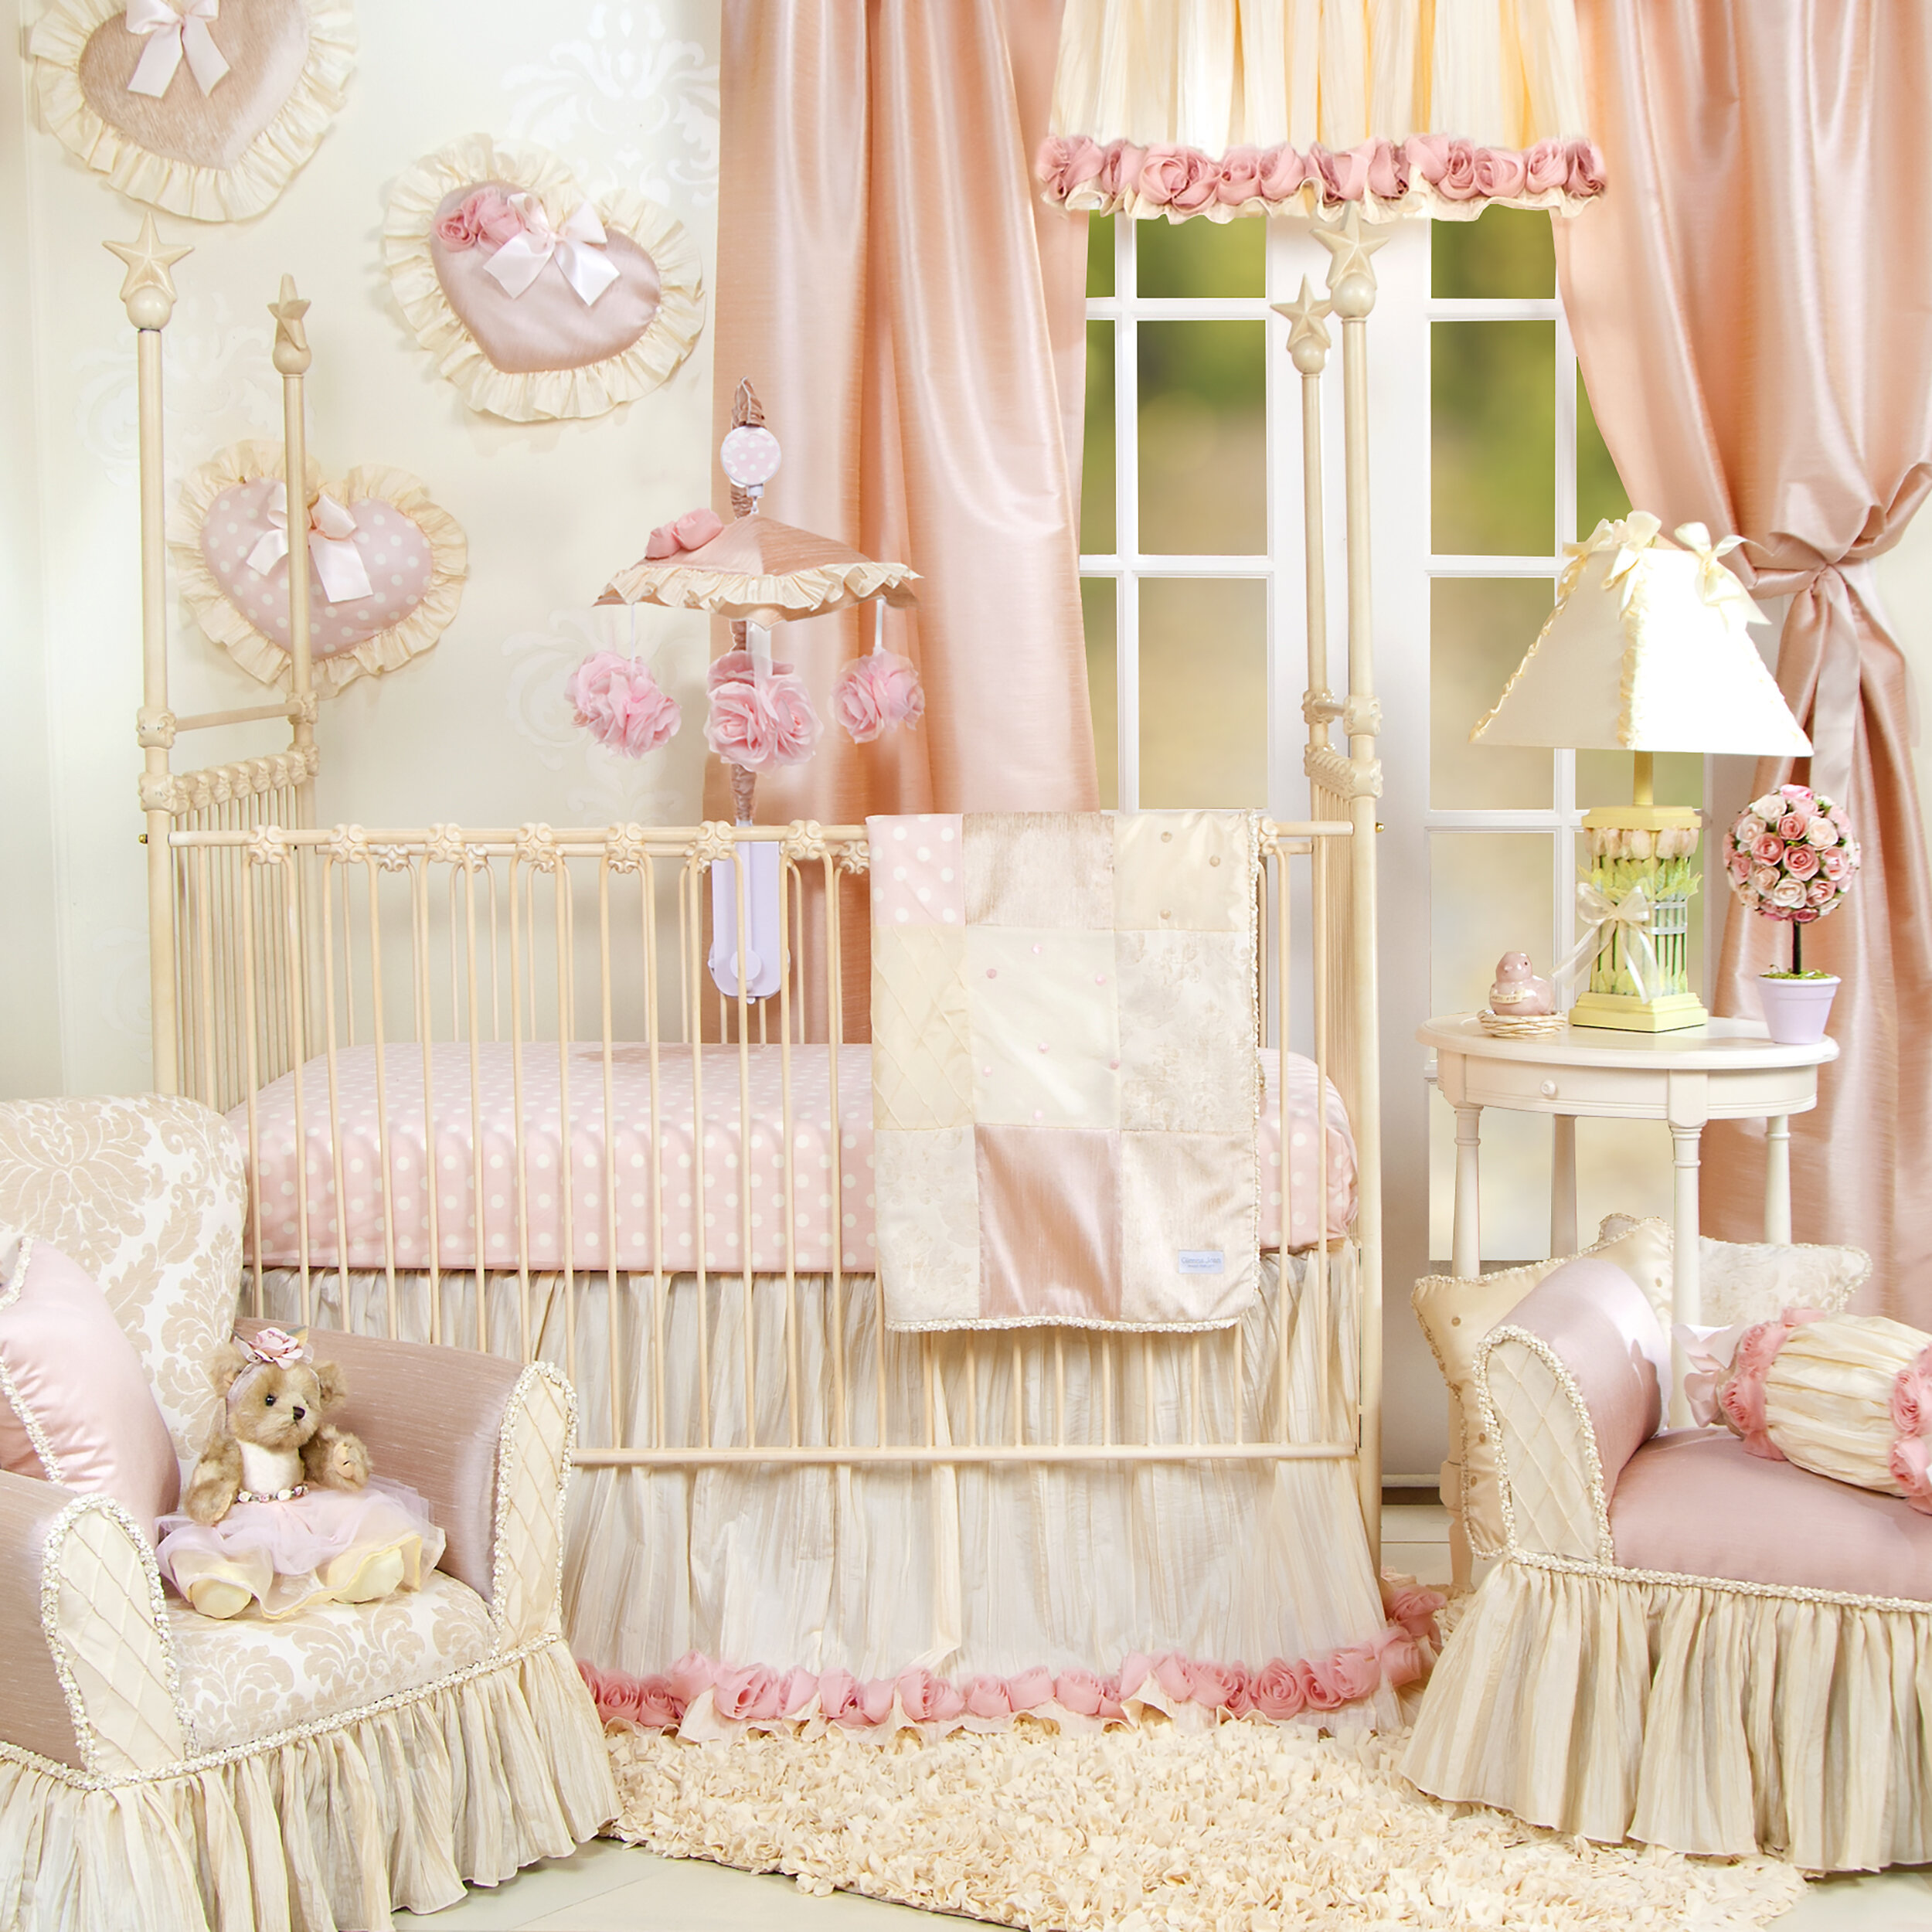 woodland goldilocks s place cribs peach set crib wwh bsps bedding products whimsy